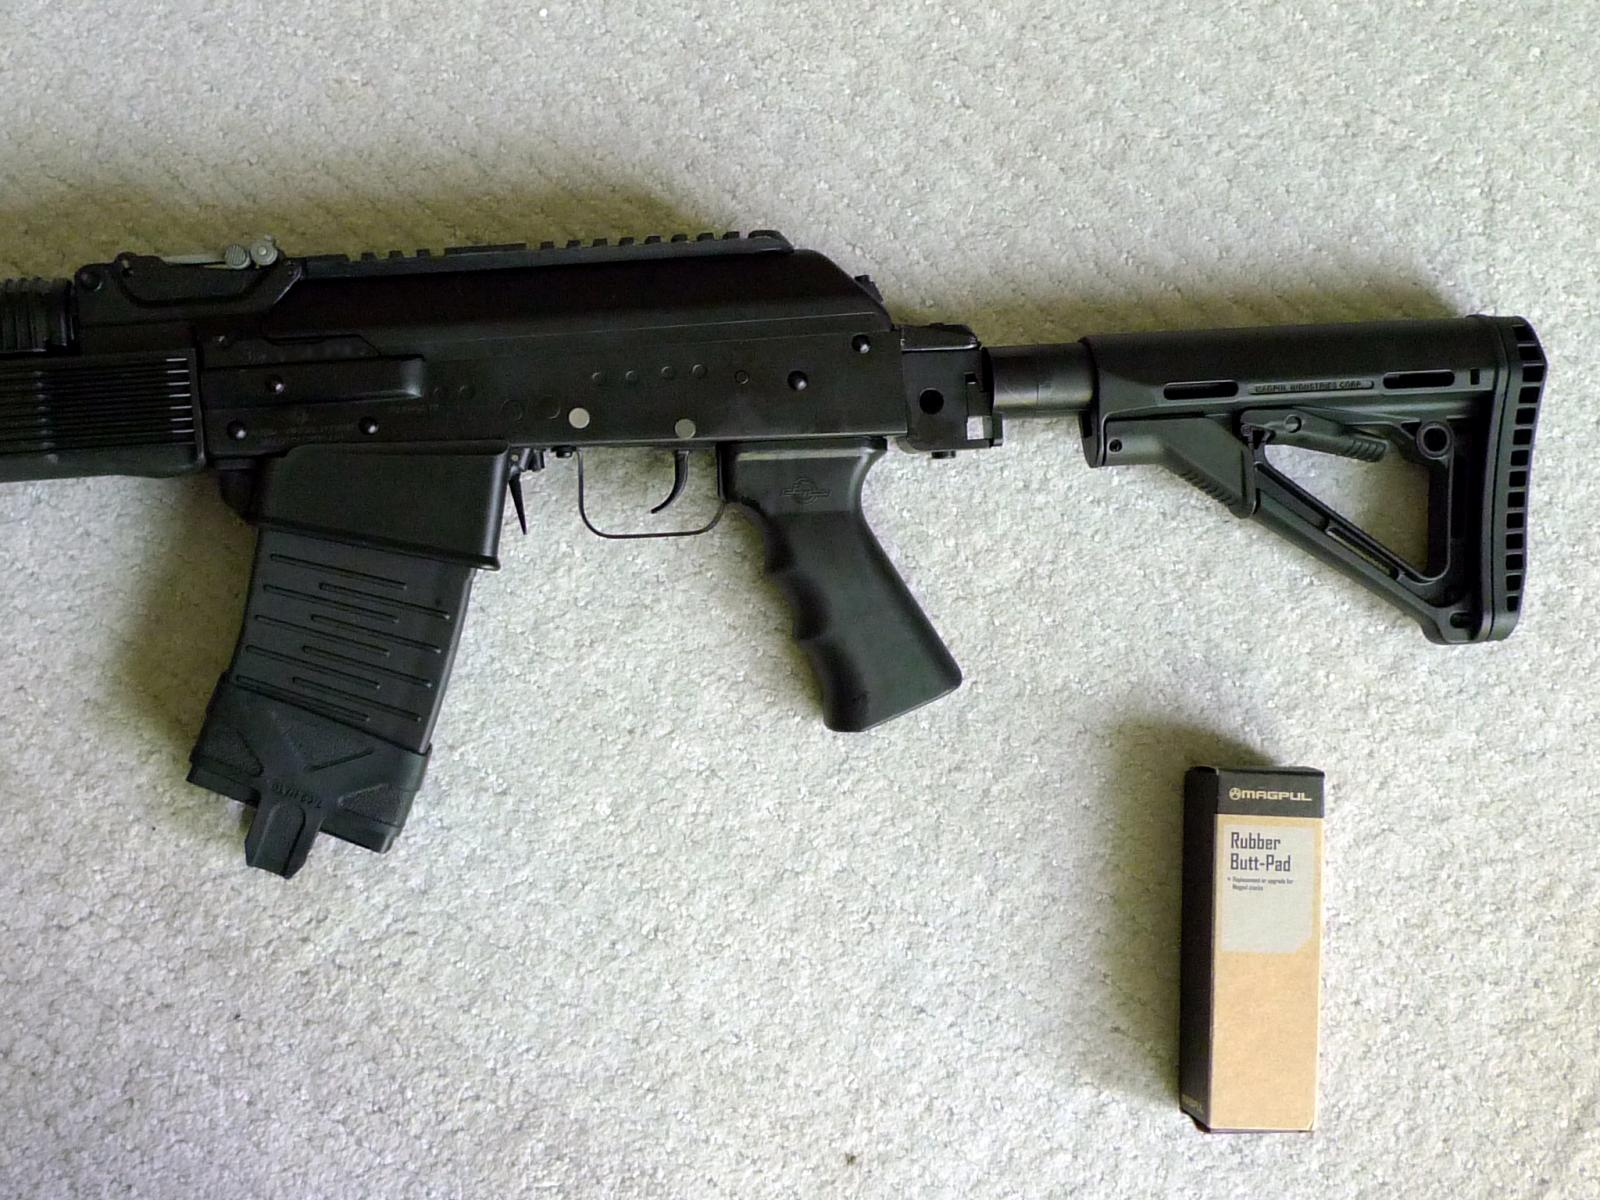 Bonesteel Vepr-12 folding stocks are back - Vepr-12 - forum Saiga-12 com